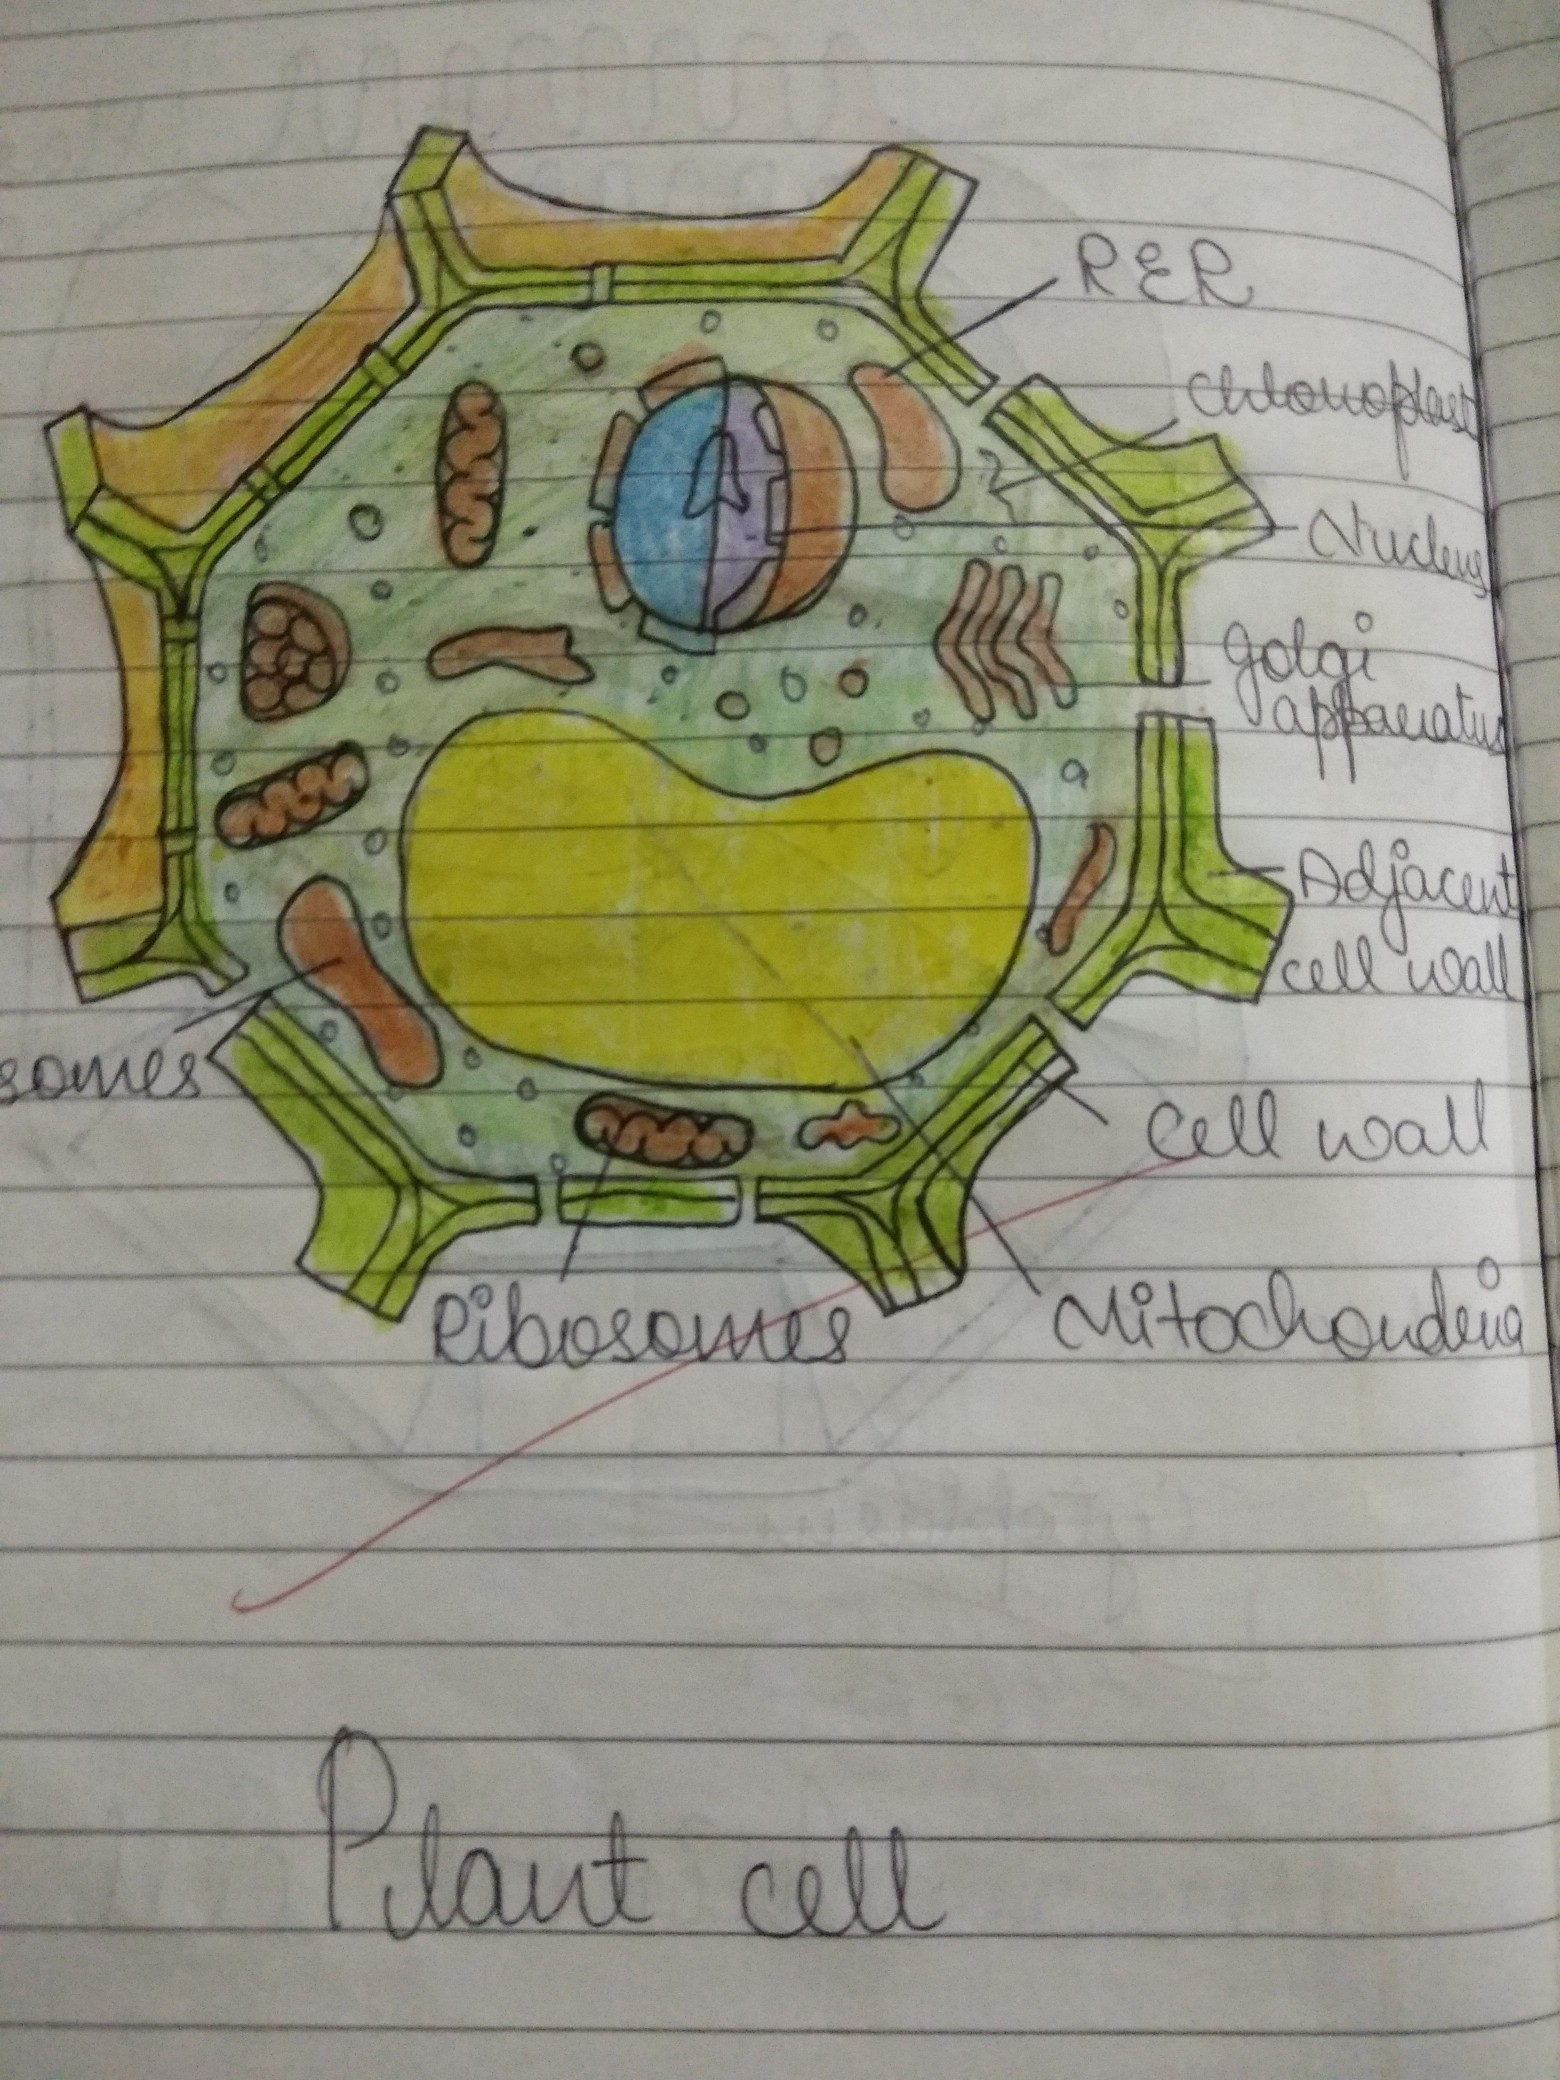 draw the diagram of plant cell and animal cell - Brainly.in